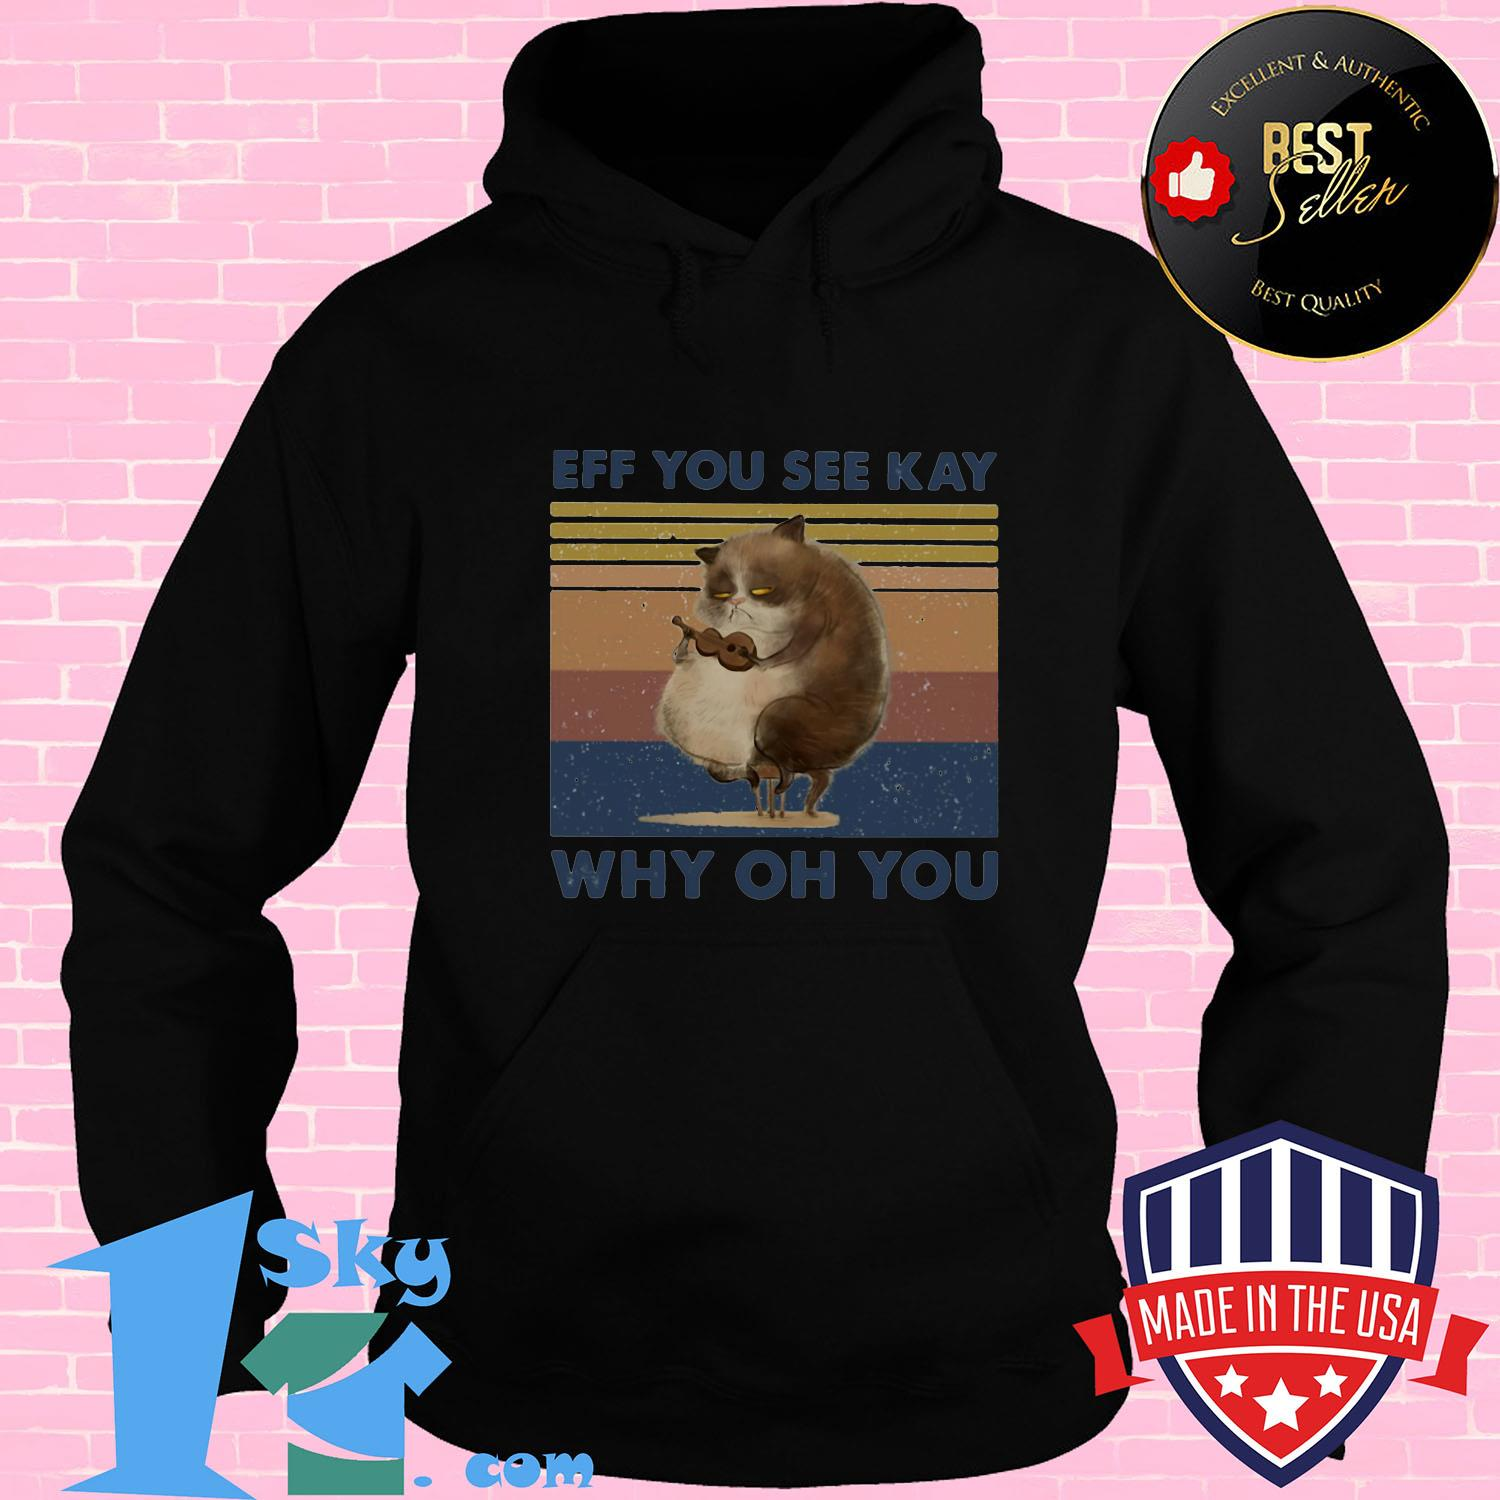 db08f2d4 eff you see kay why oh you cat vintage shirt hoodie - Shop trending - We offer all trend shirts - 1SkyTee